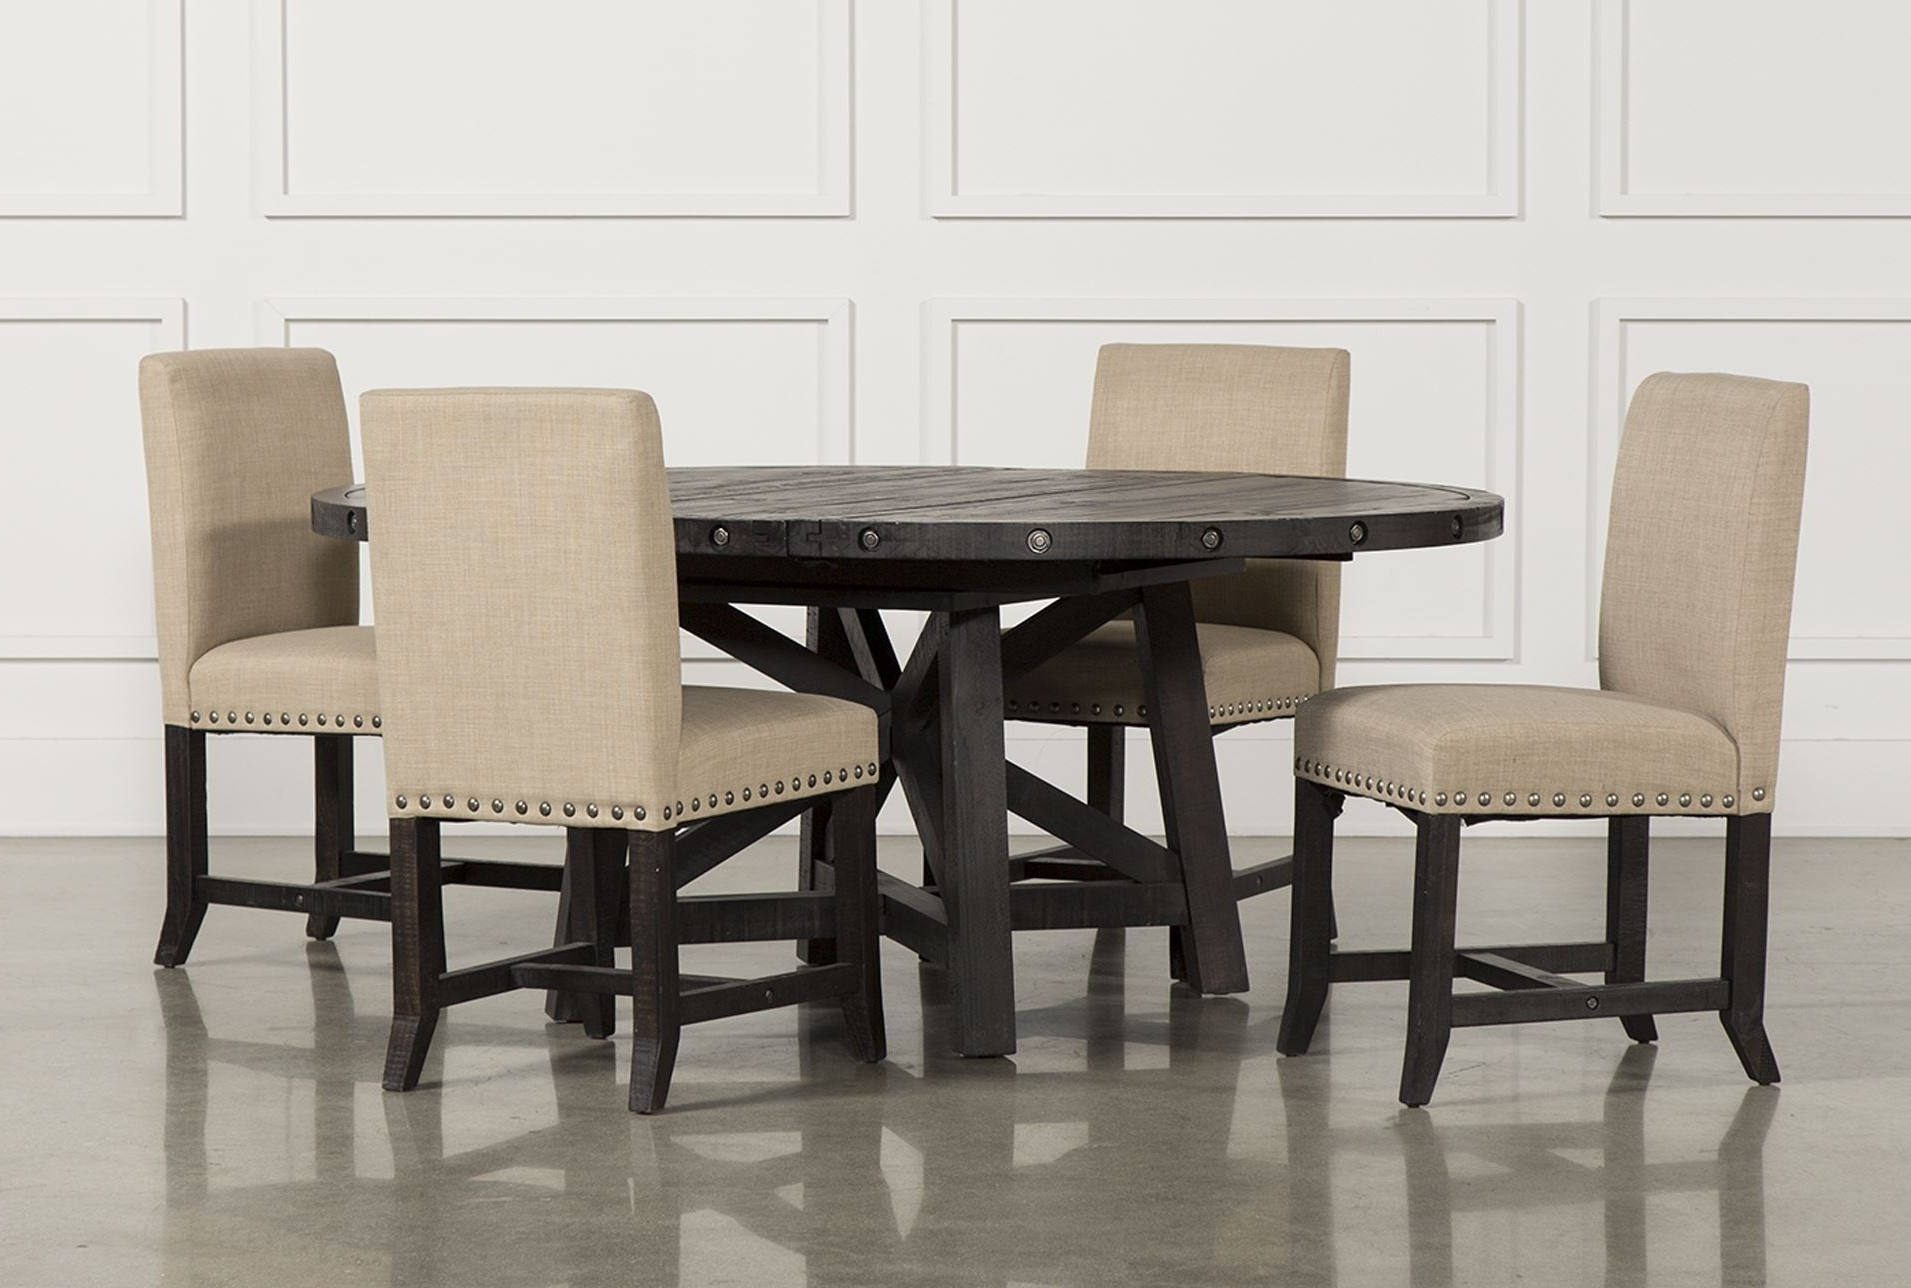 Chapleau Ii 7 Piece Extension Dining Table Sets Inside Newest Dining Tables (View 5 of 25)